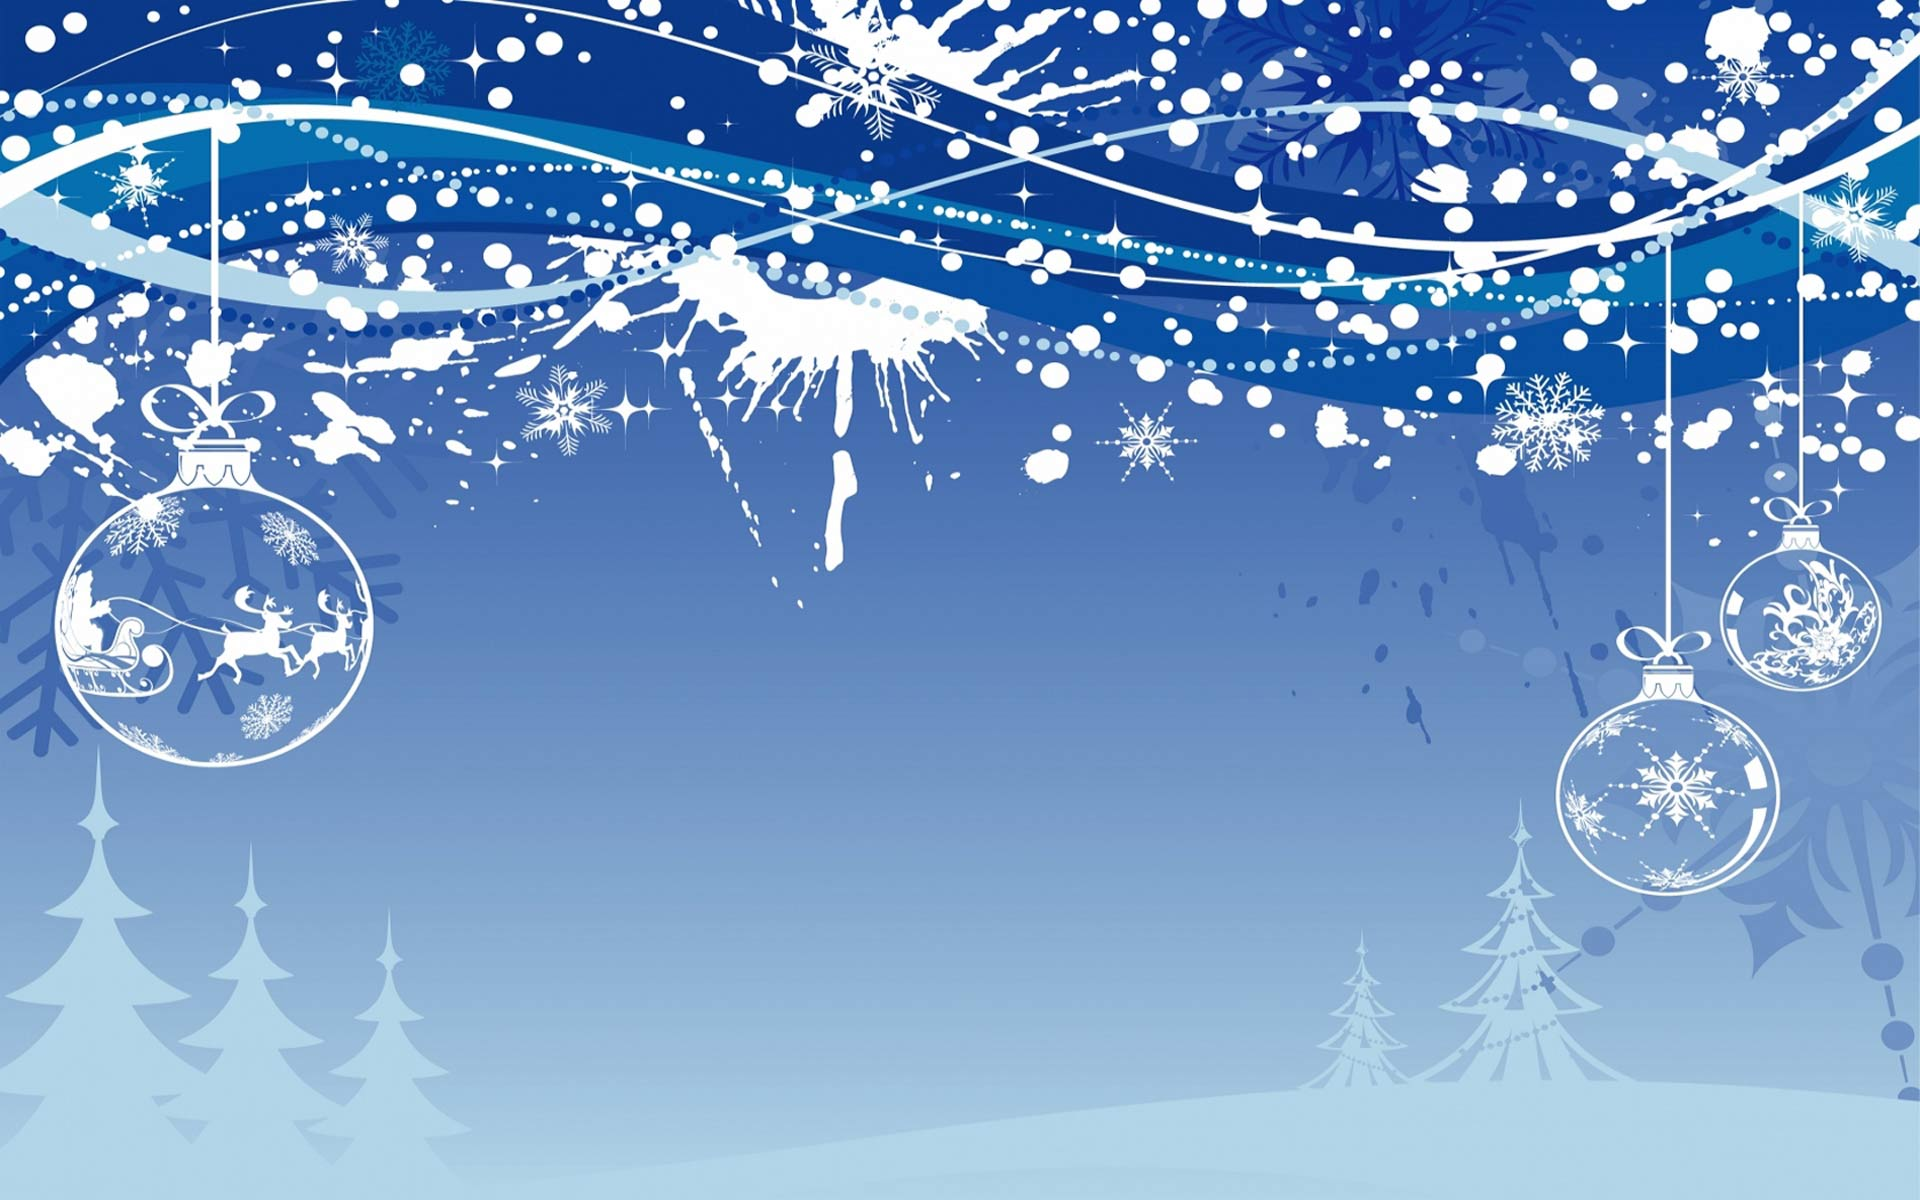 ... wallpaper android | free live christmas wallpaper android | Desktop